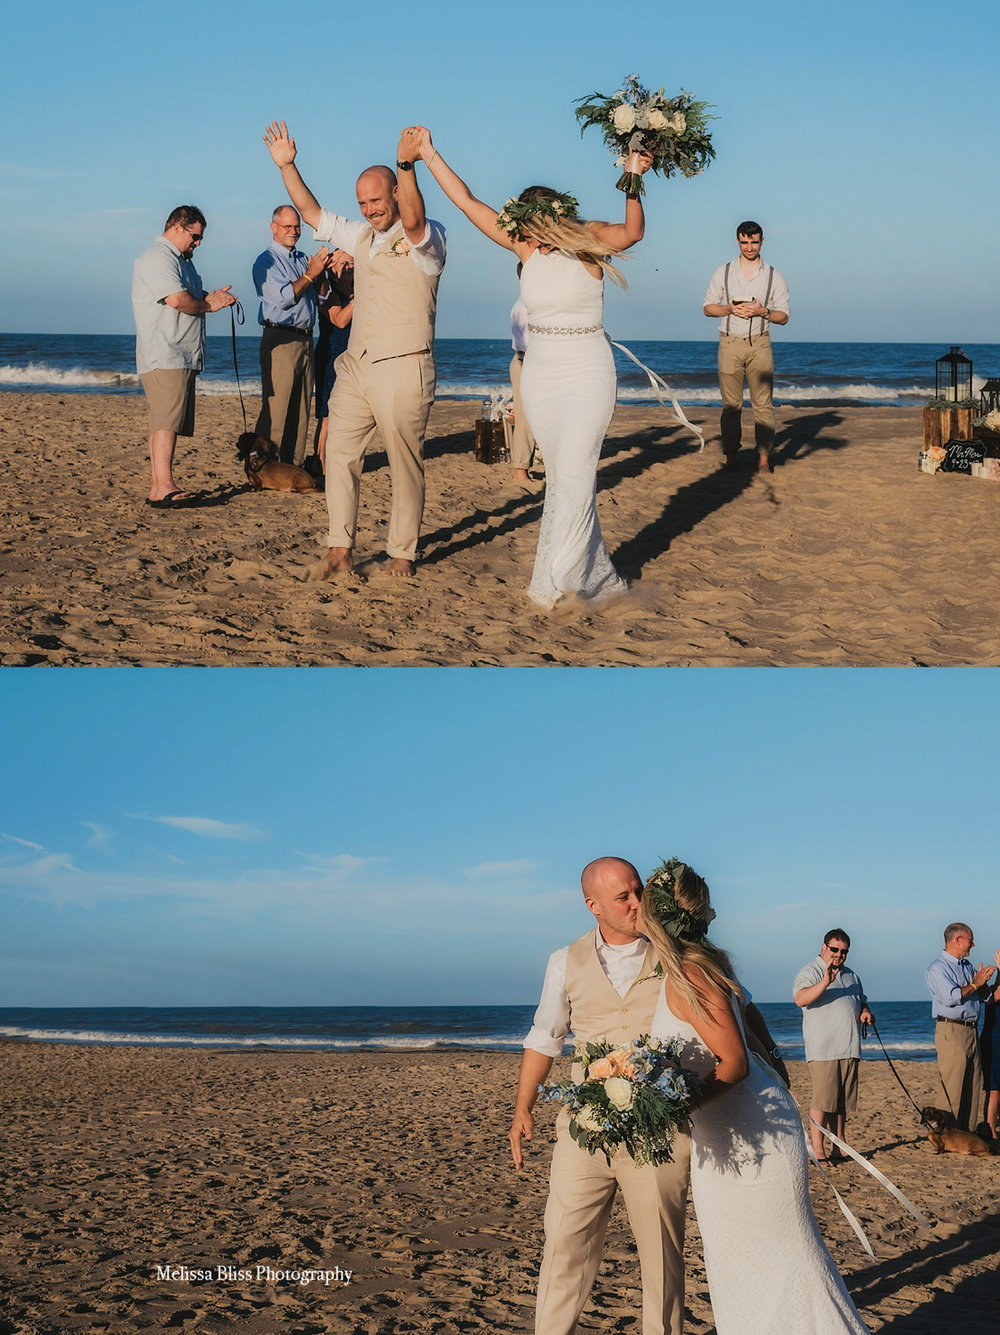 just-wed-bride-and-groom-at-virginia-beach-oceanfront-wedding-by-melissa-bliss-photography-sandbridge-norfolk-va-beach-wedding-photographer.jpg